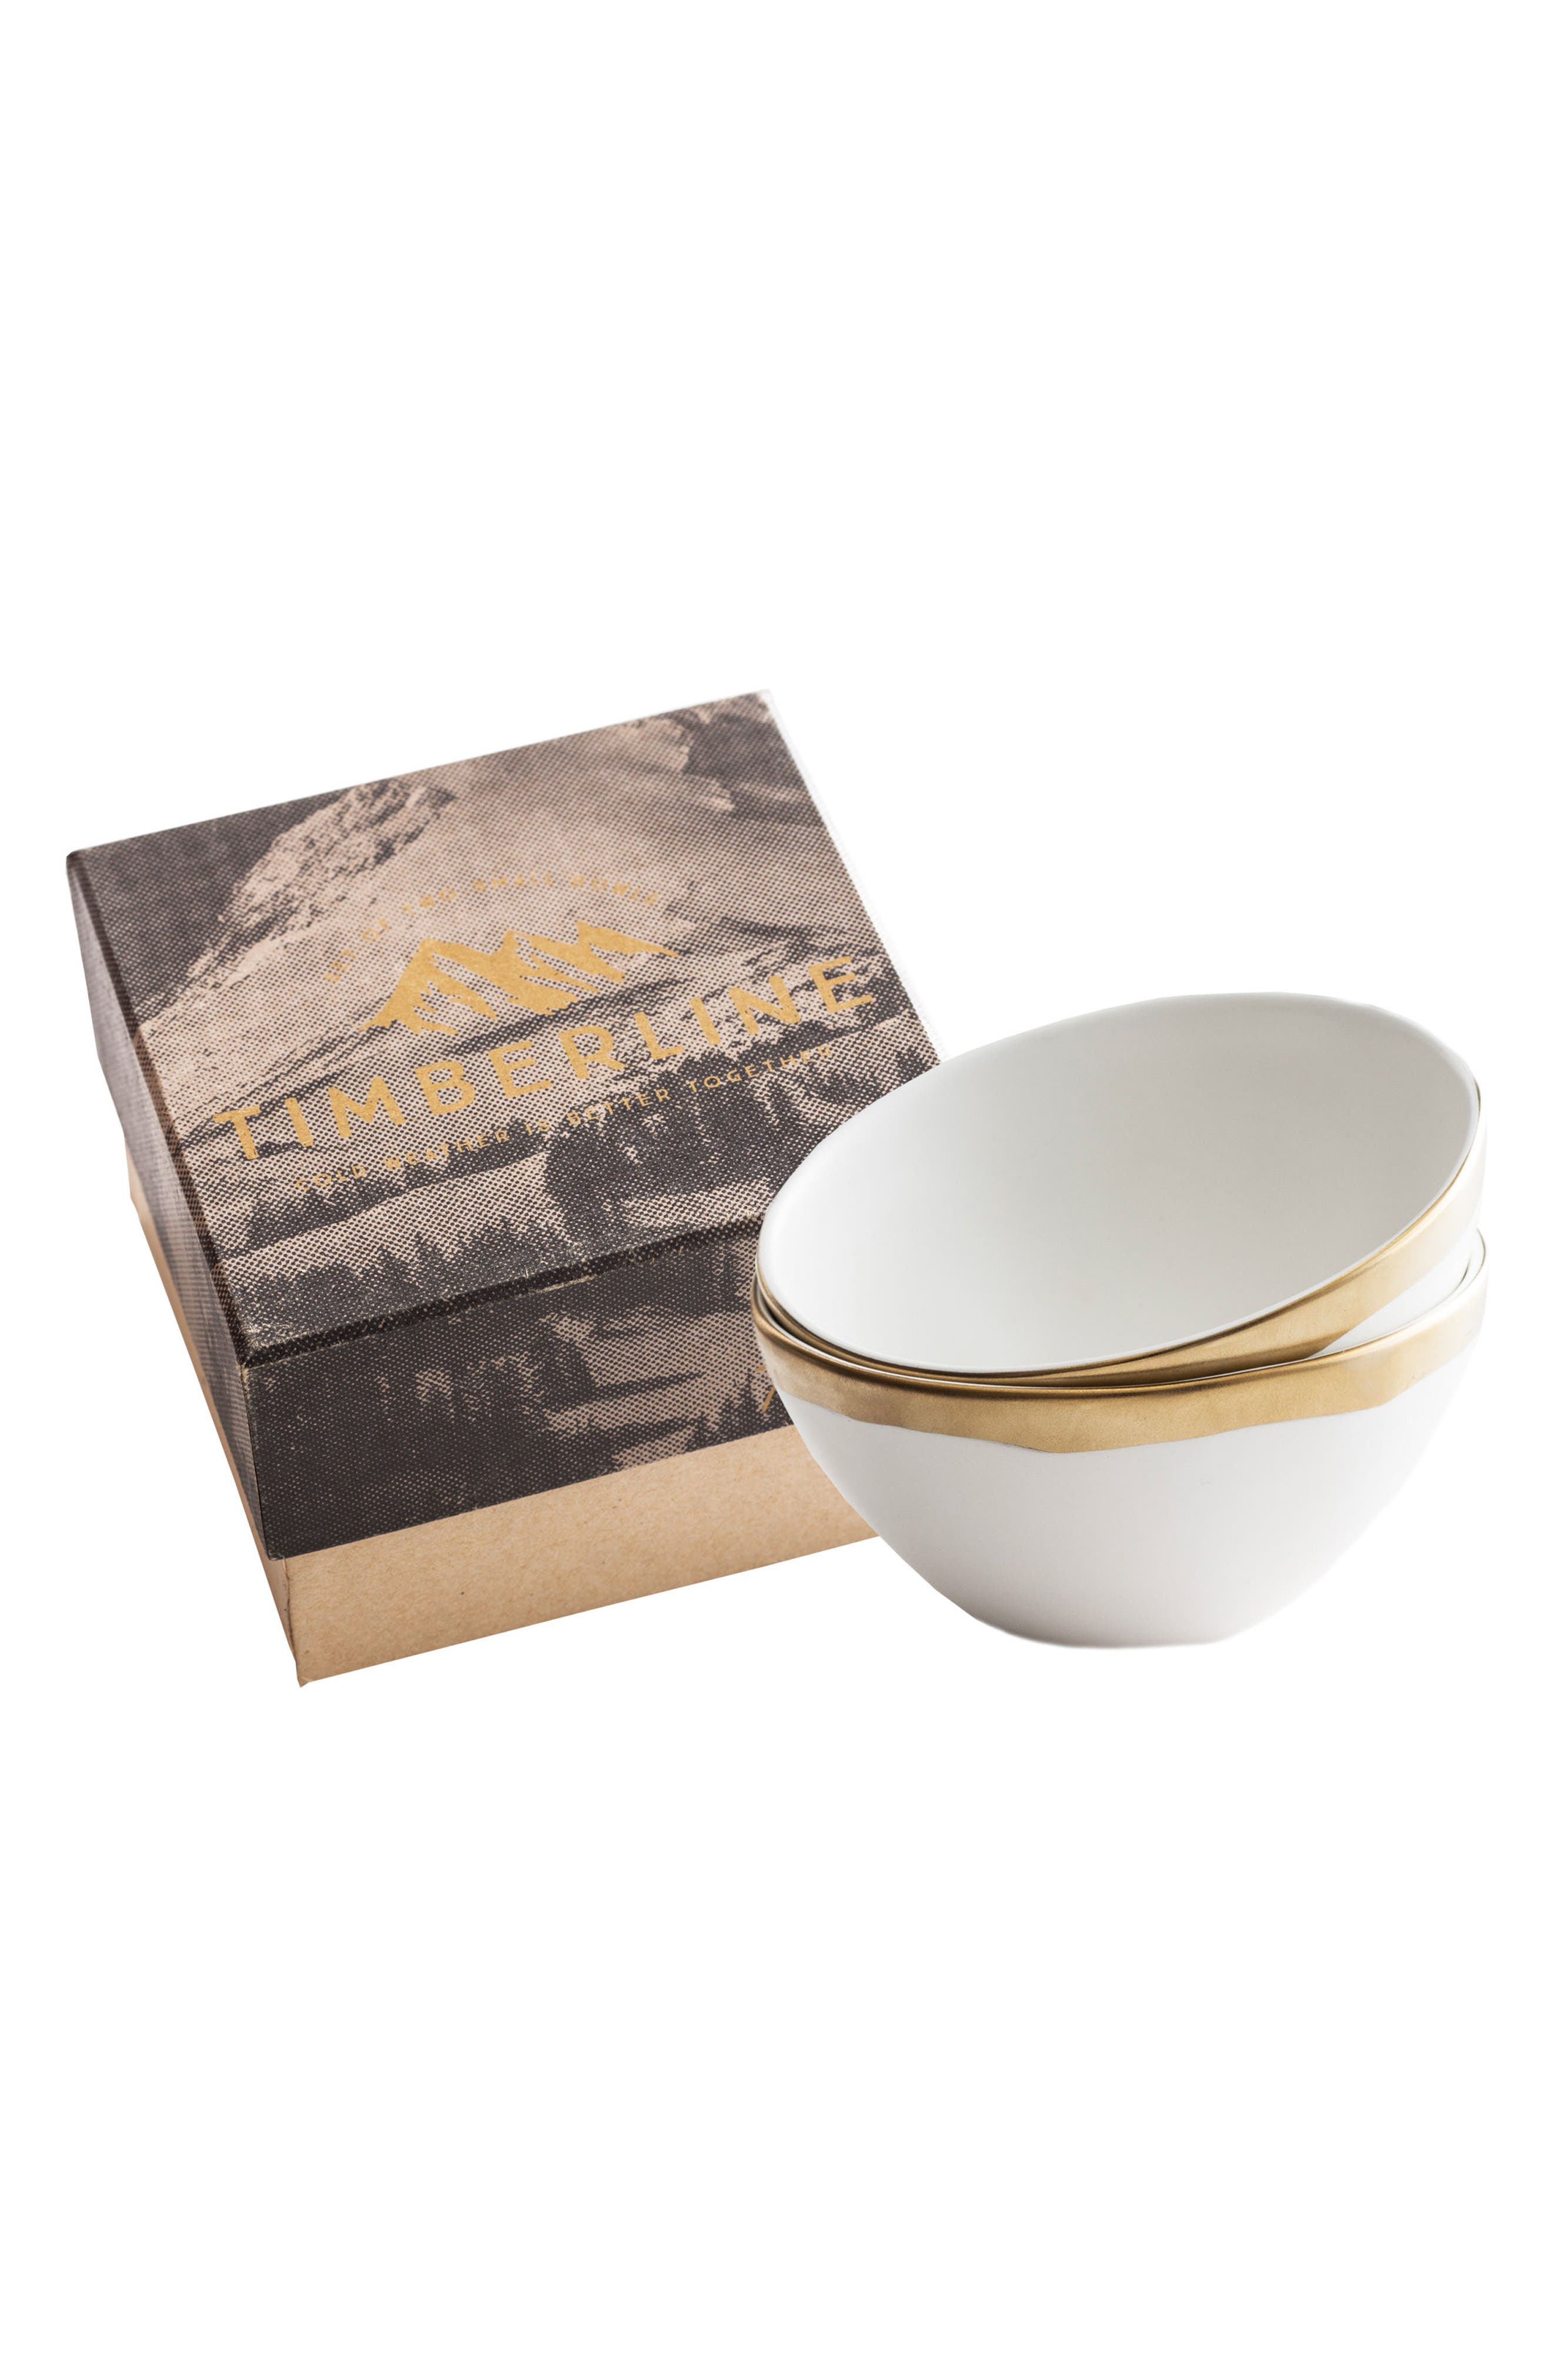 Timberline Set of 2 Porcelain Bowls,                             Main thumbnail 1, color,                             White/ Gold